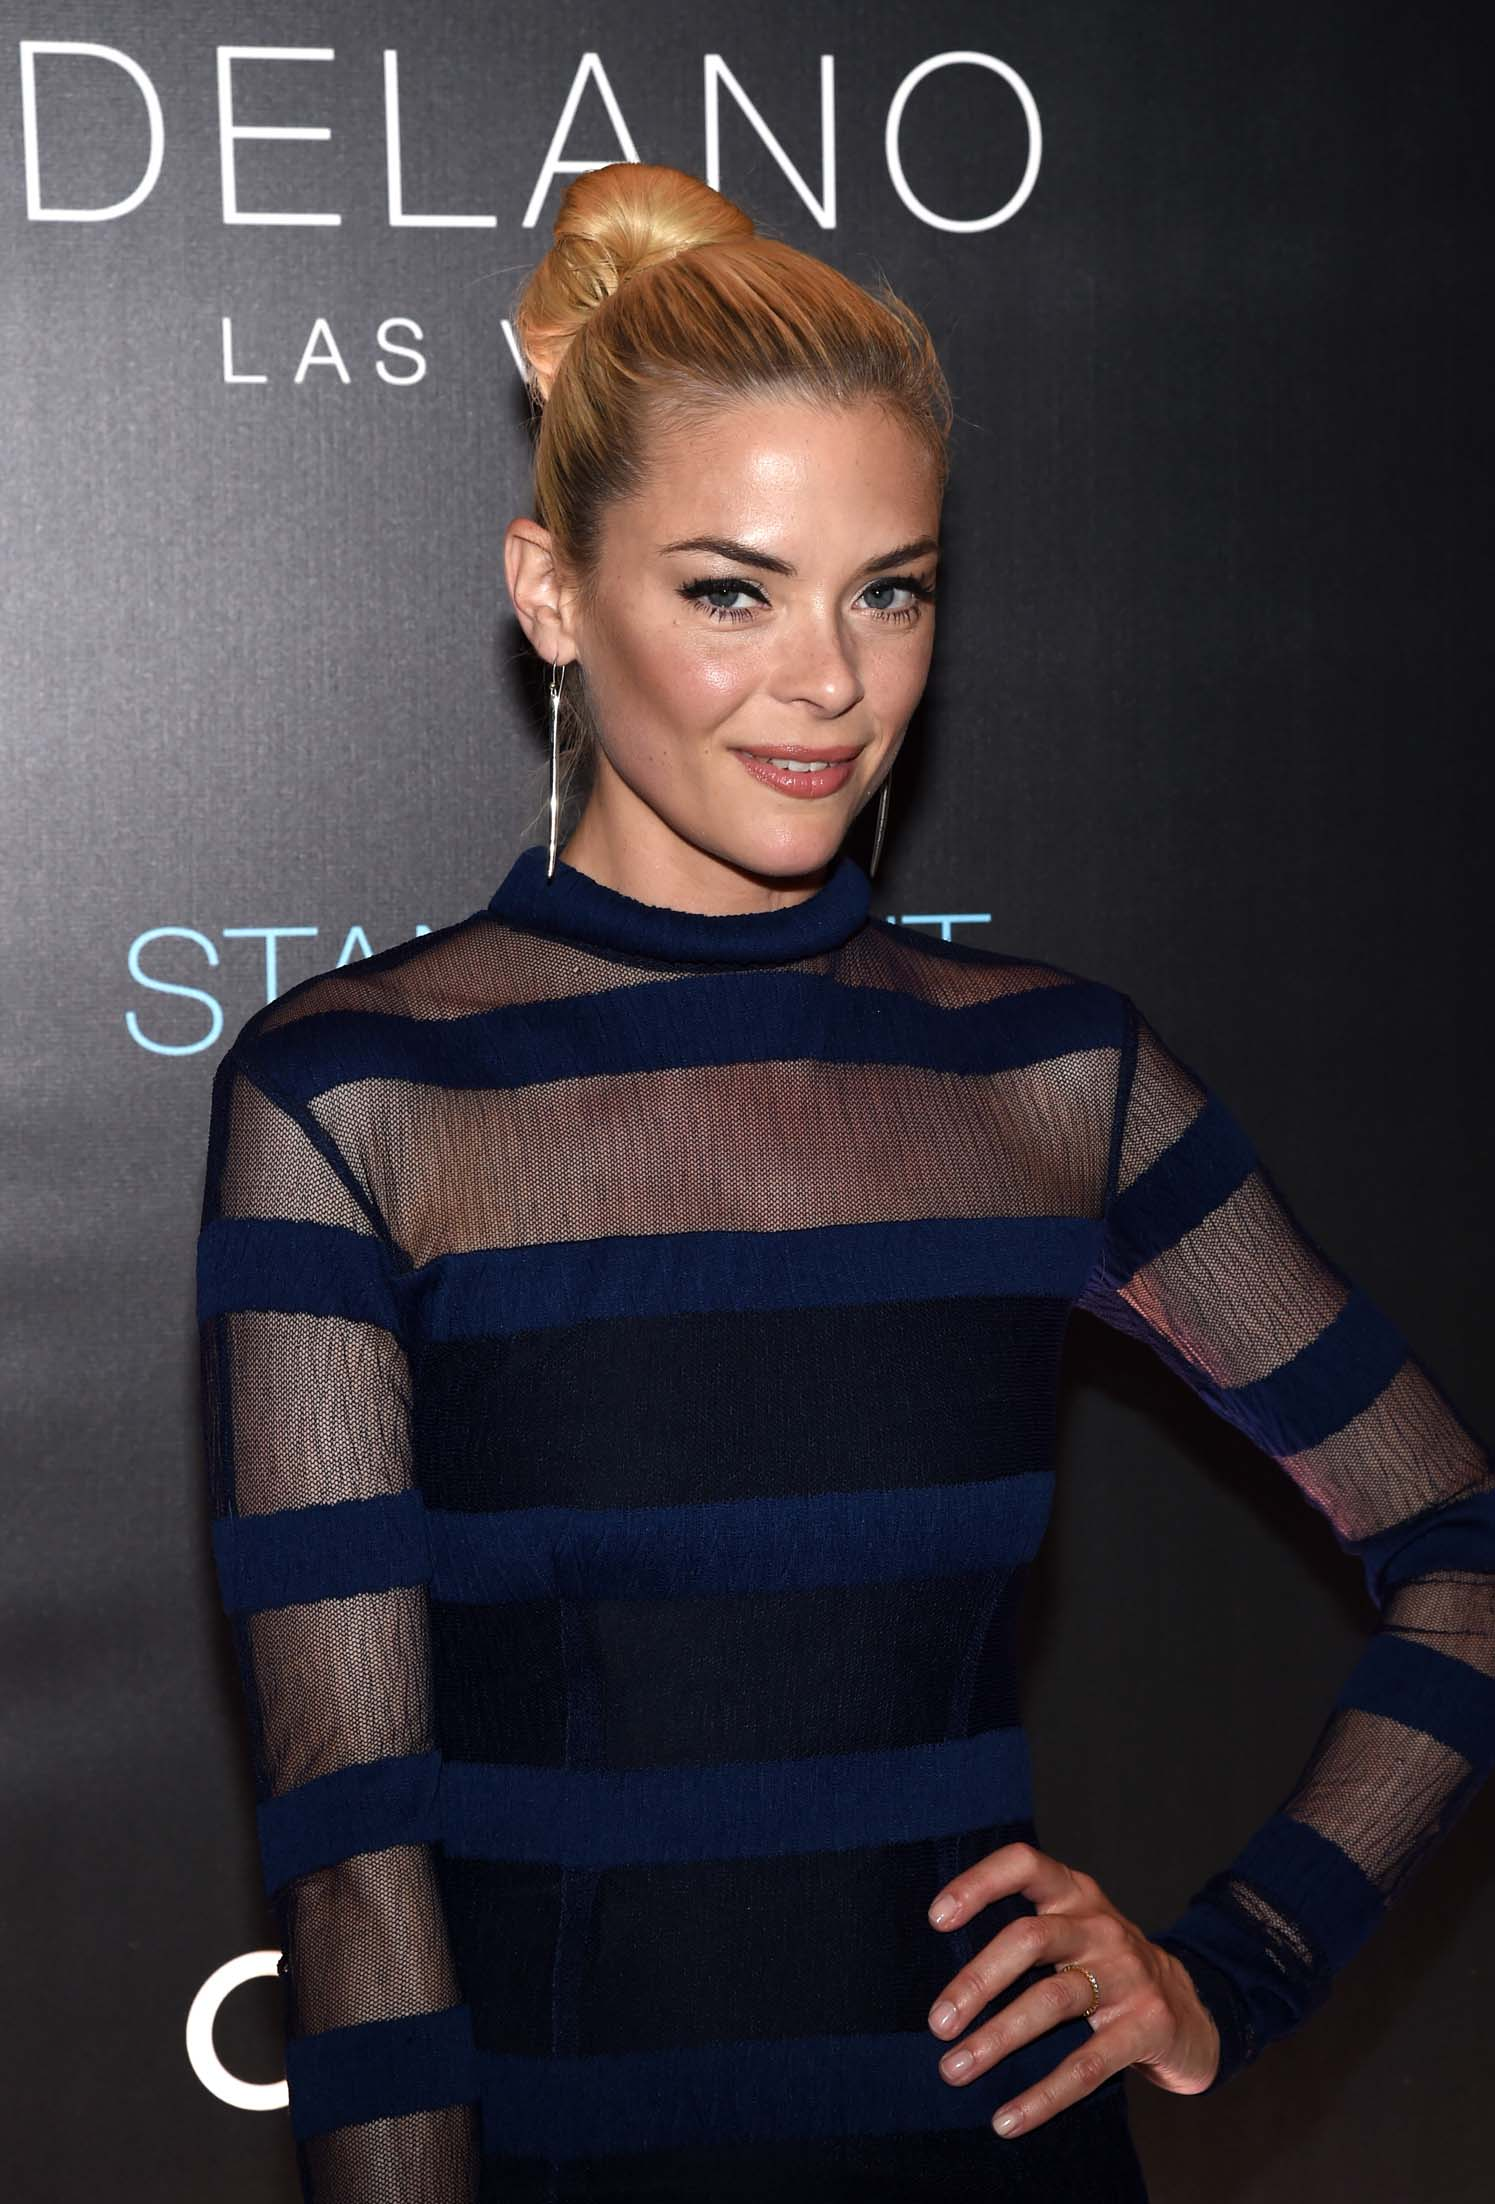 Actress and event host Jaime King arrives on the red carpet at Delano Las Vegas' grand opening party.